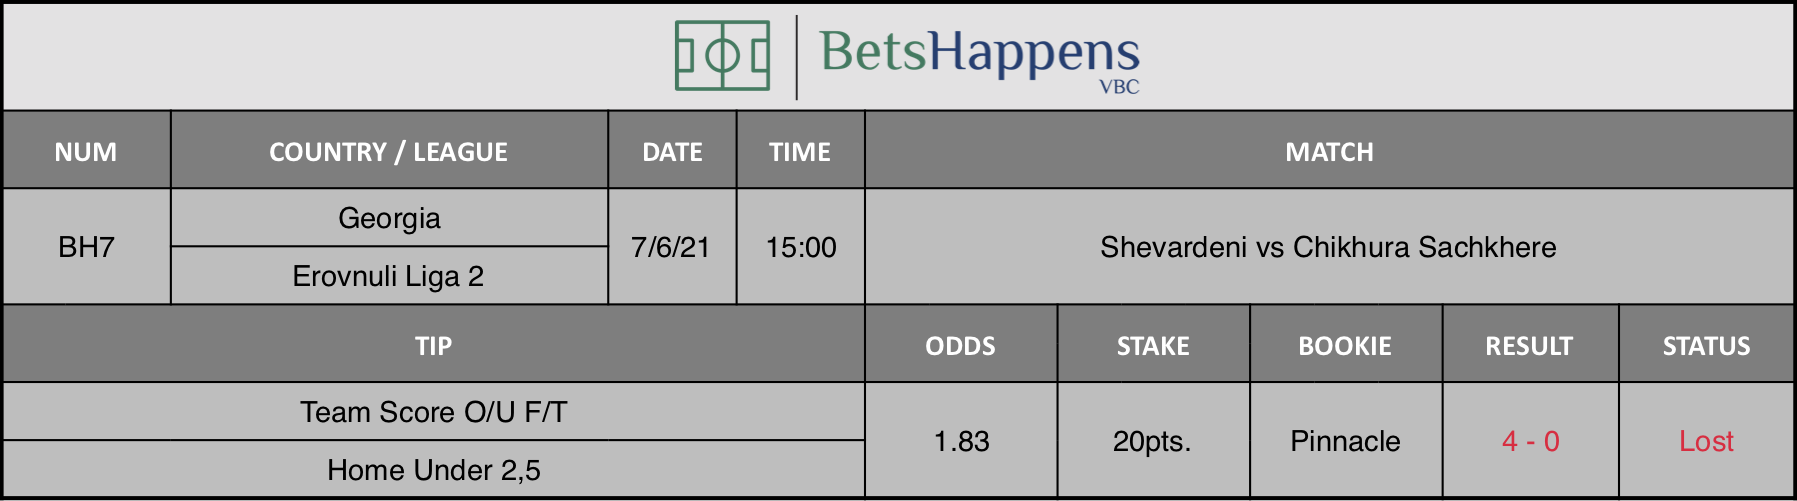 Results of our tip for the Shevardeni vs Chikhura Sachkhere Match Team Score O/U F/T Home Under 2,5 is recommended.